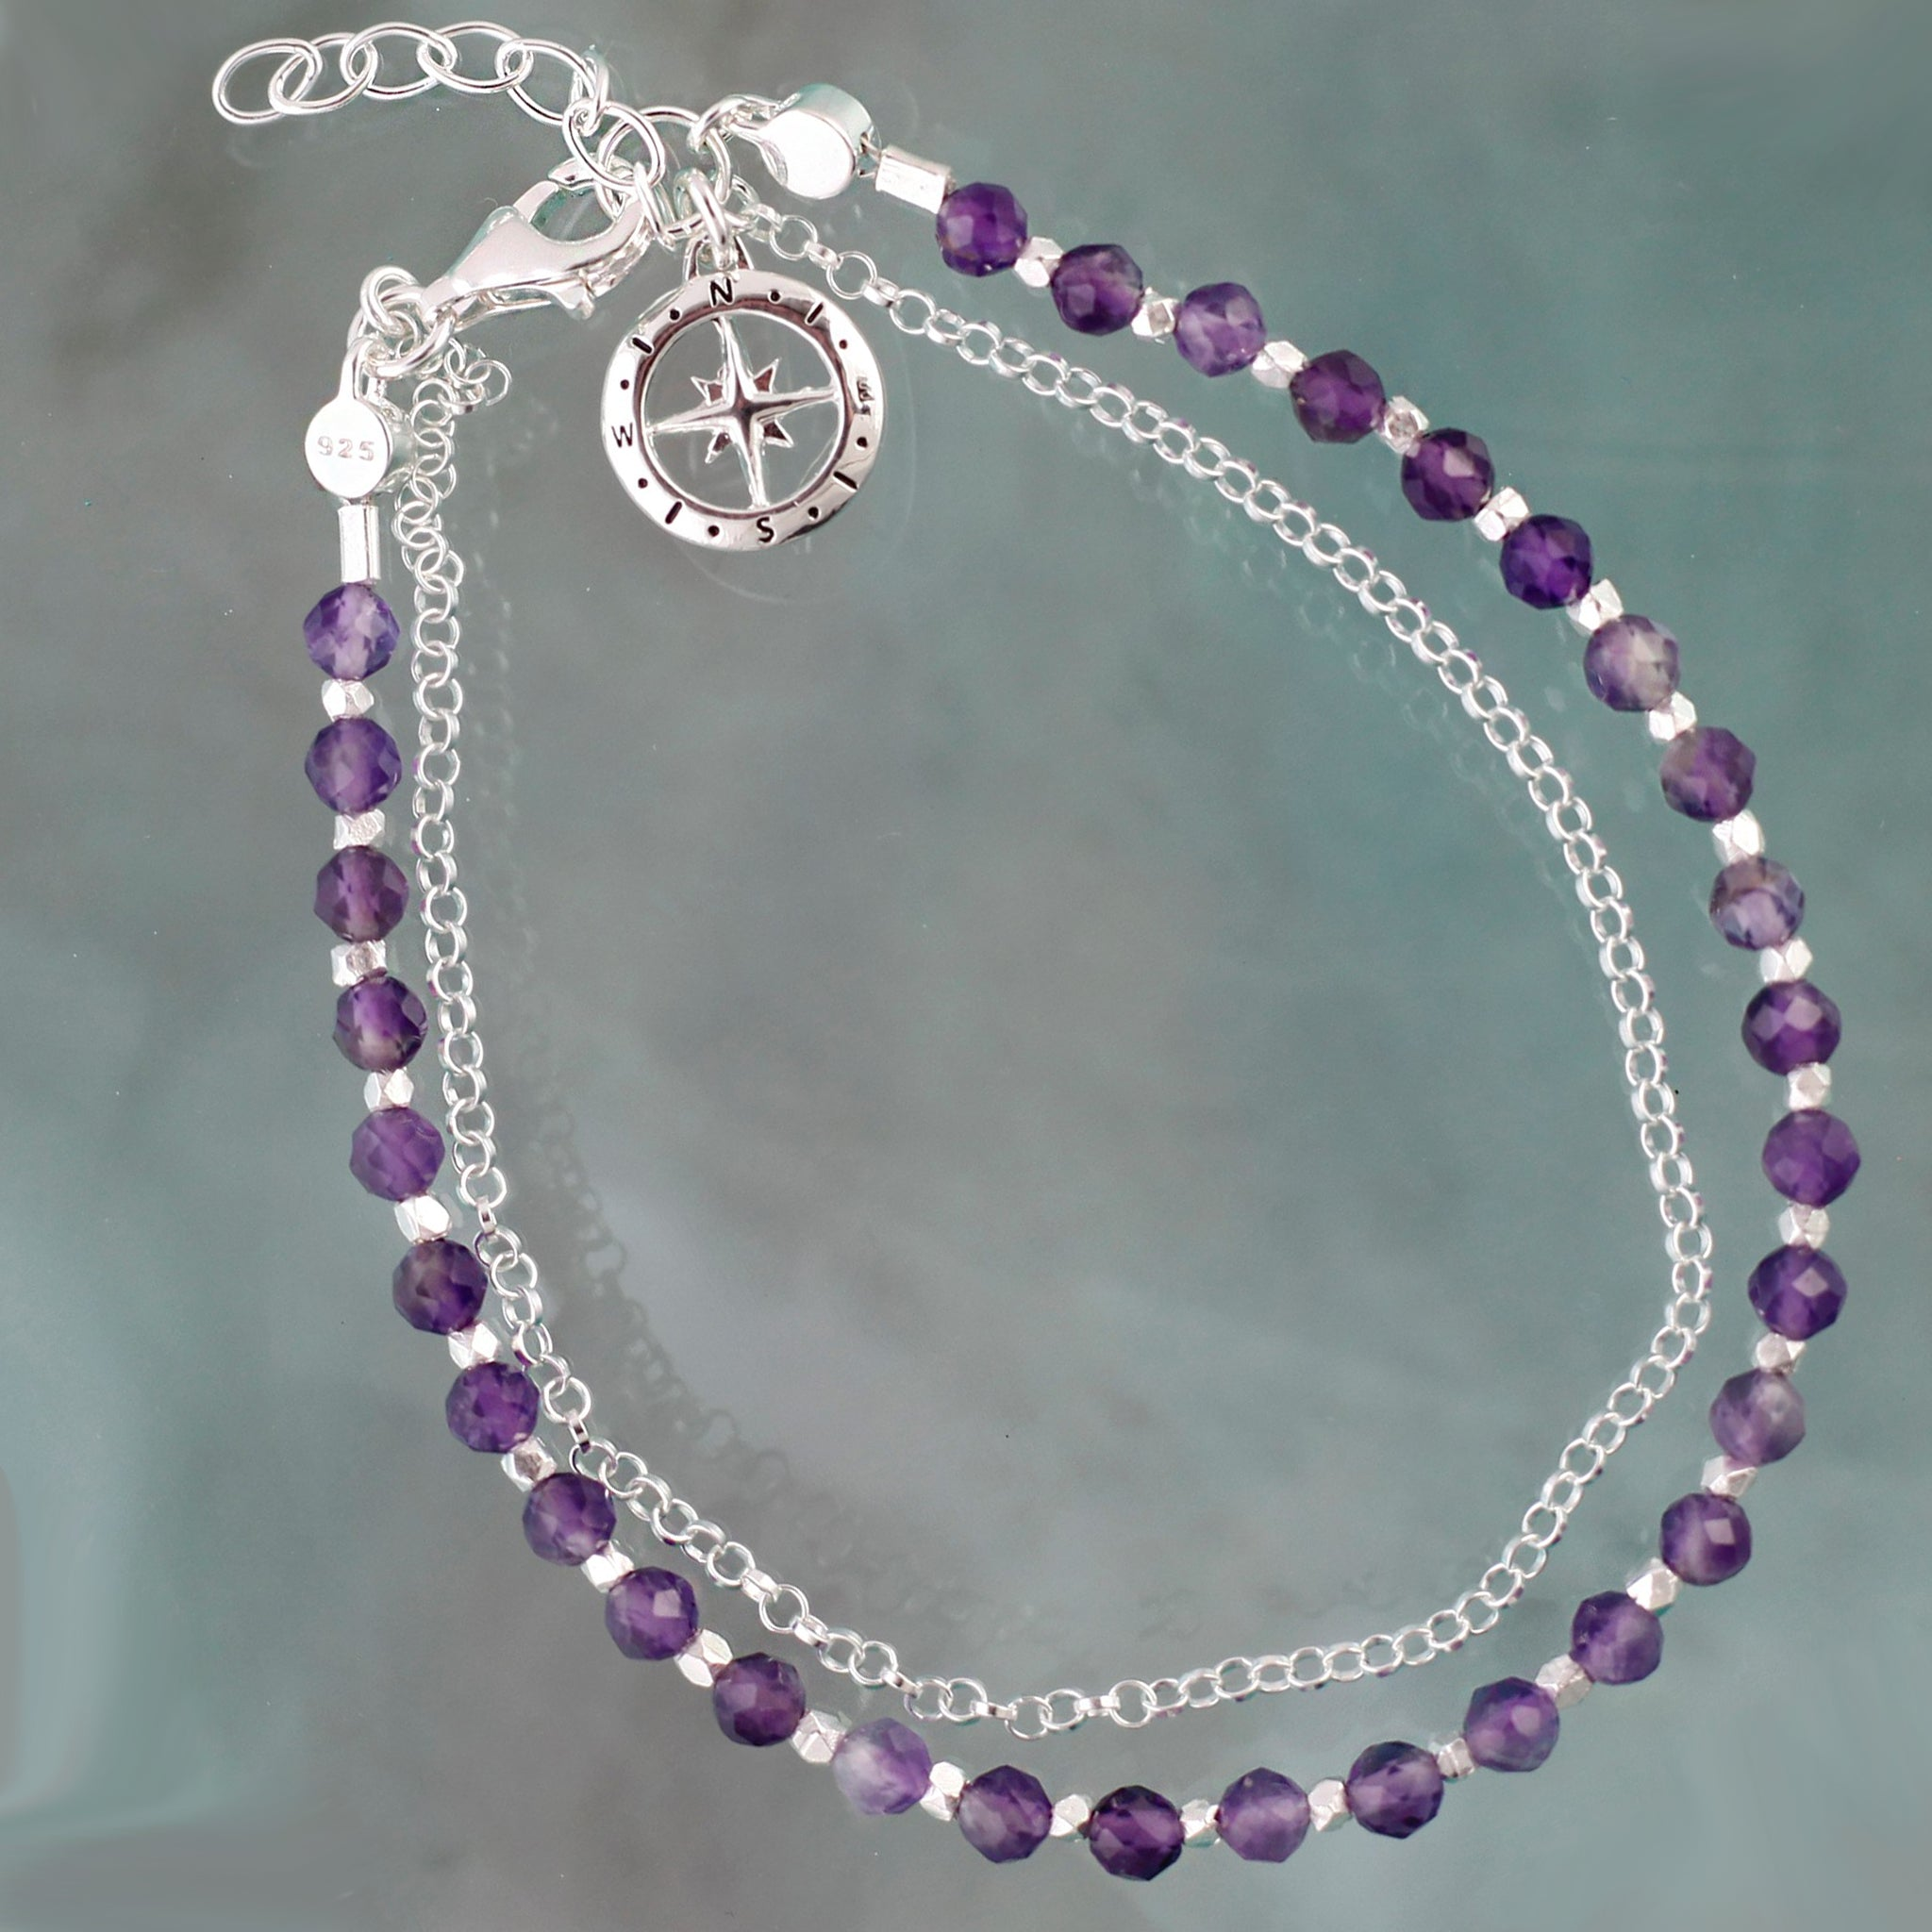 Friendship Bracelet in Silver with Amethyst